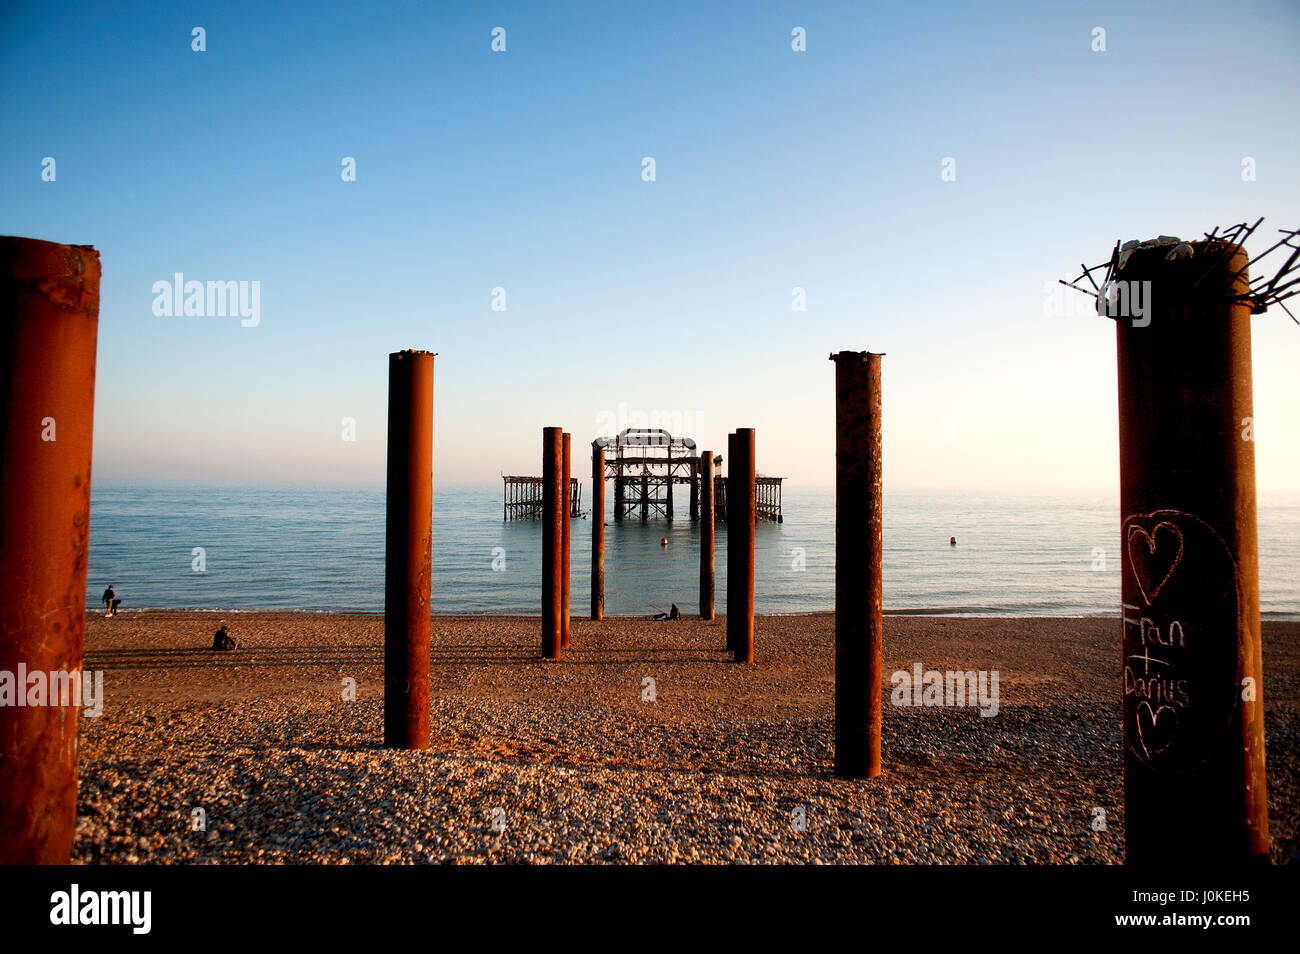 Brighton and Hove's West Pier is a famous landmark on the south coast of England, now a burnt-out rusting skeleton - Stock Image